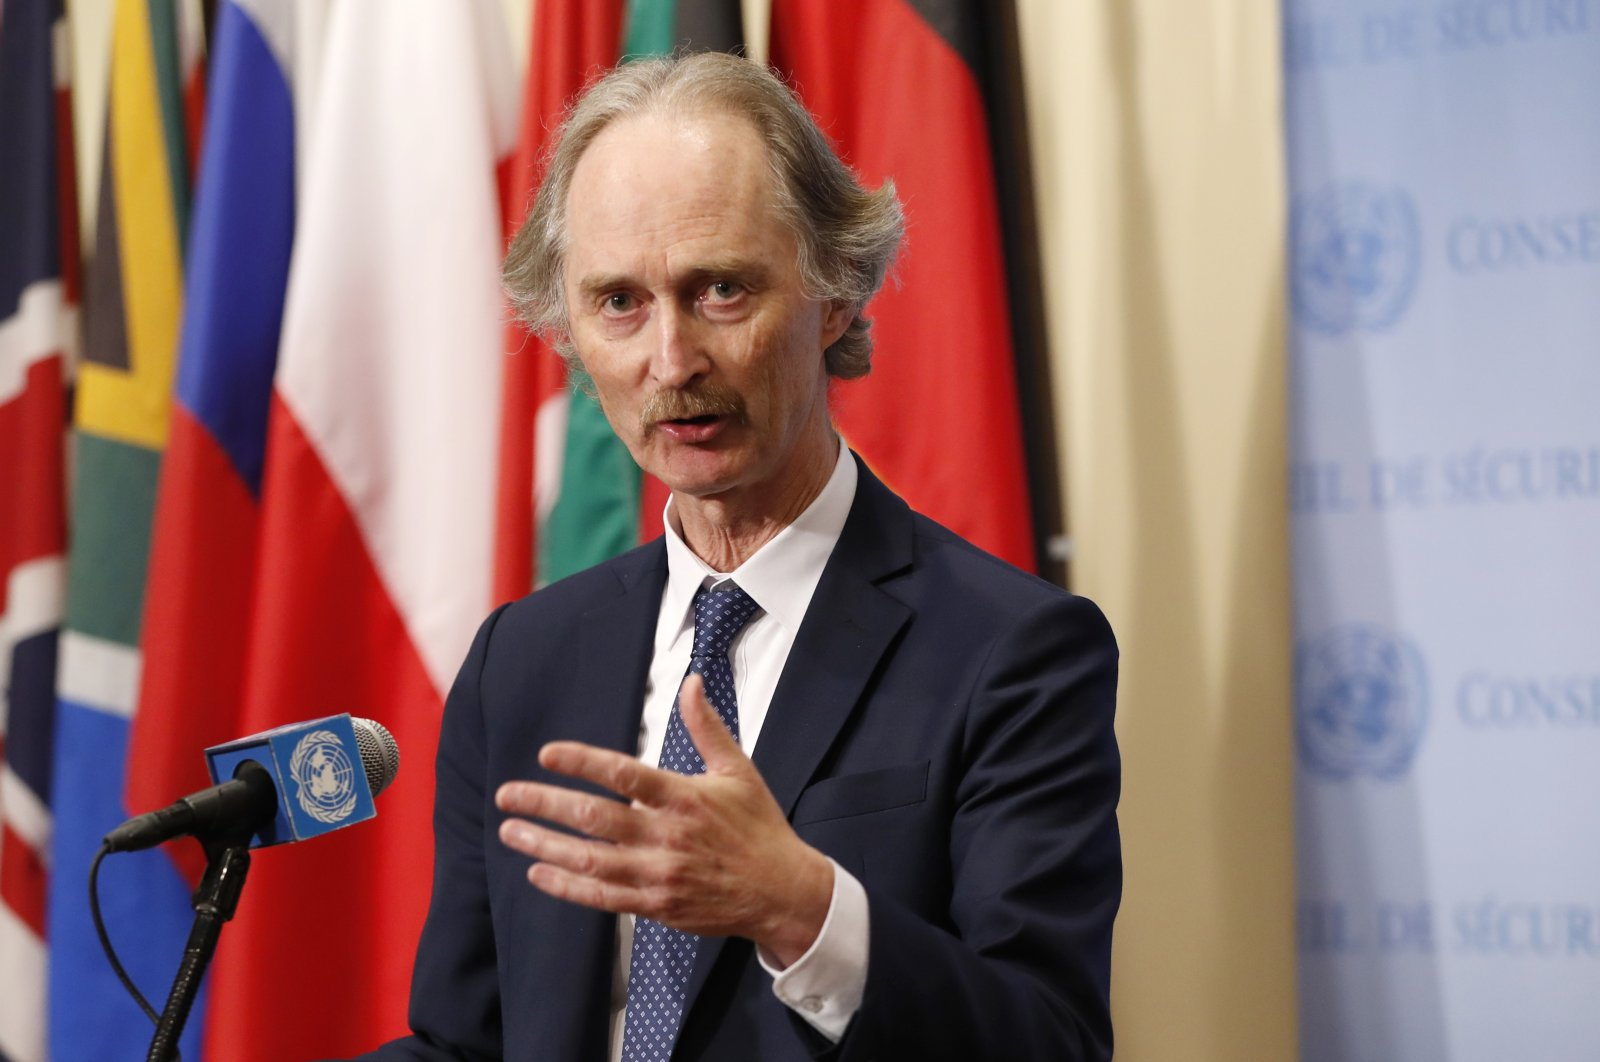 U.N. Special Envoy for Syria Geir Pedersen speaks to journalists following a U.N. Security Council (UNSC) meeting on Syria at U.N. headquarters, April 30, 2019. (AP Photo)